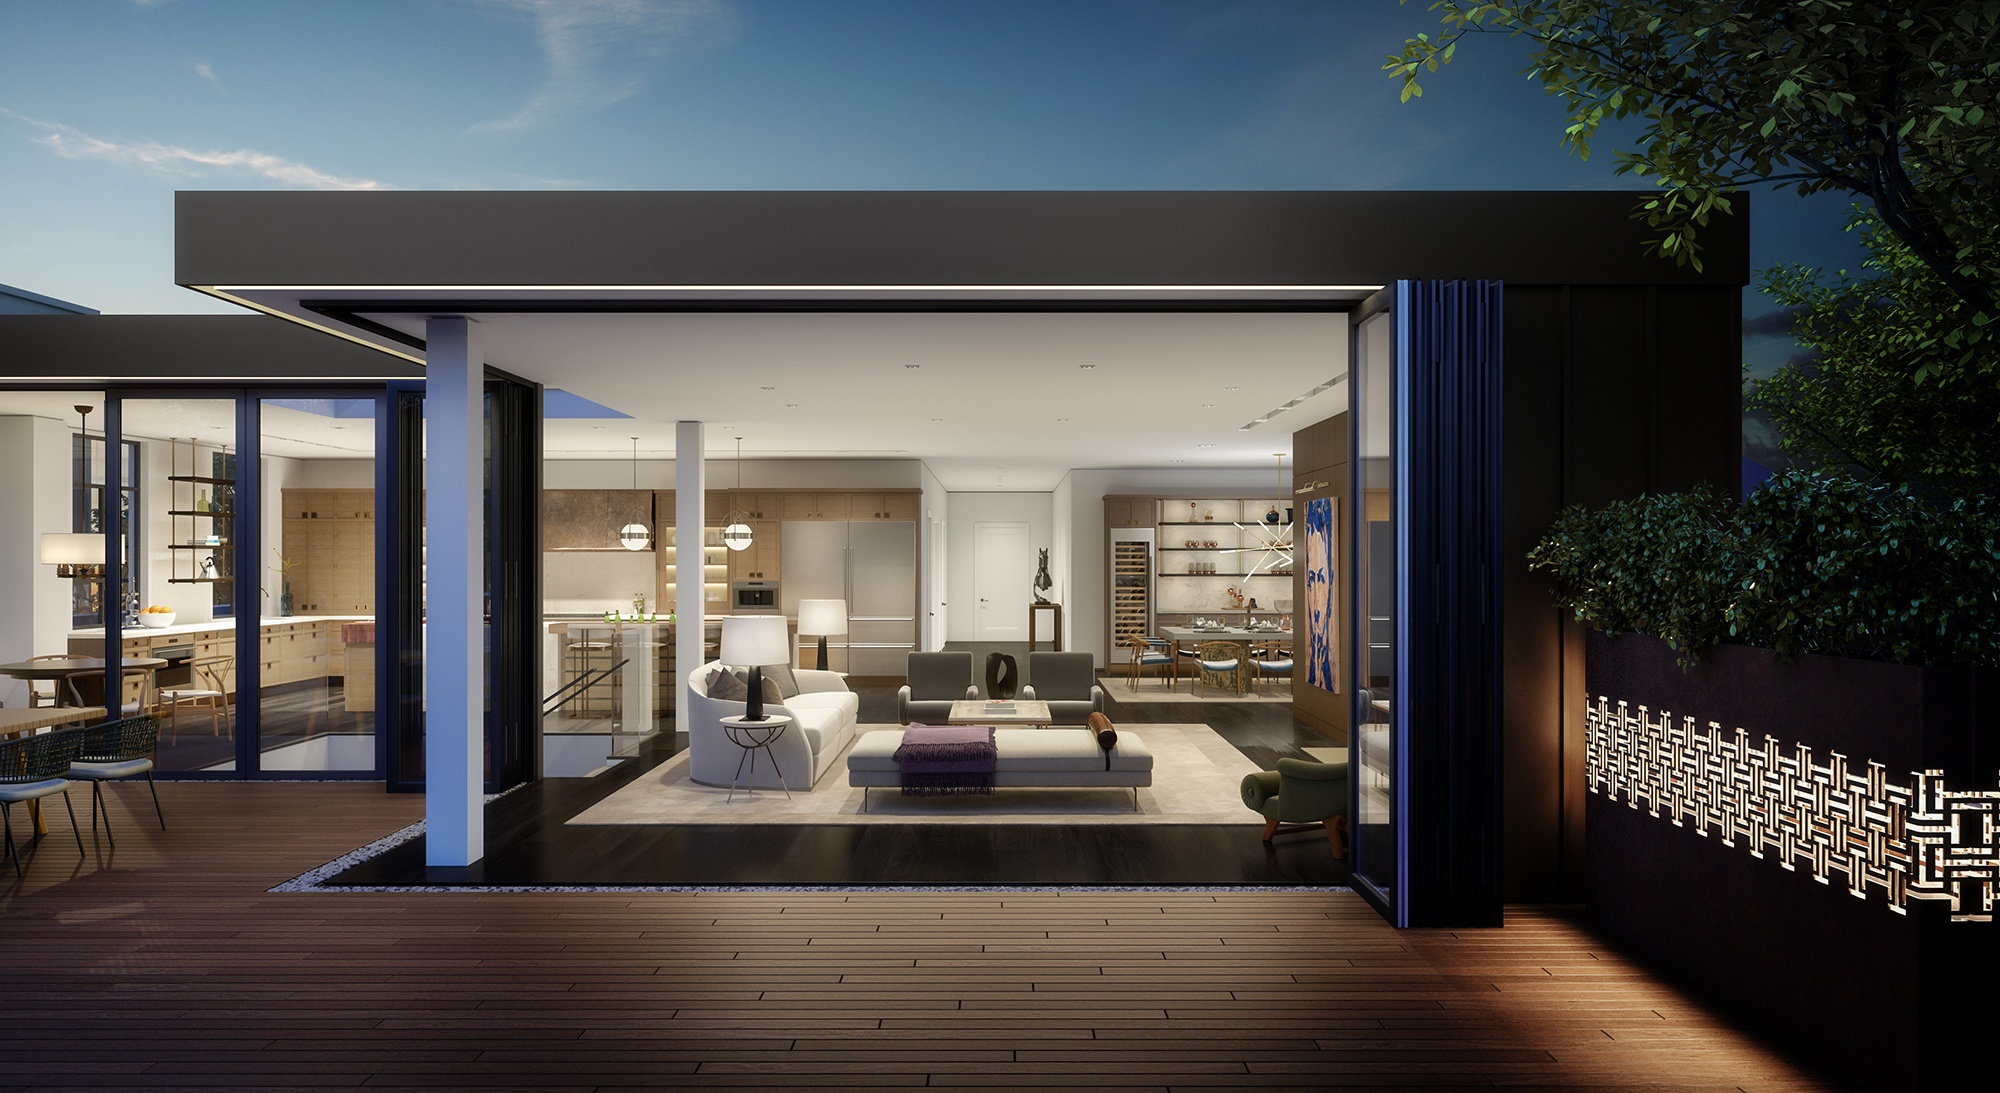 Inside the Upcoming $18 Million Penthouse on Beacon Hill